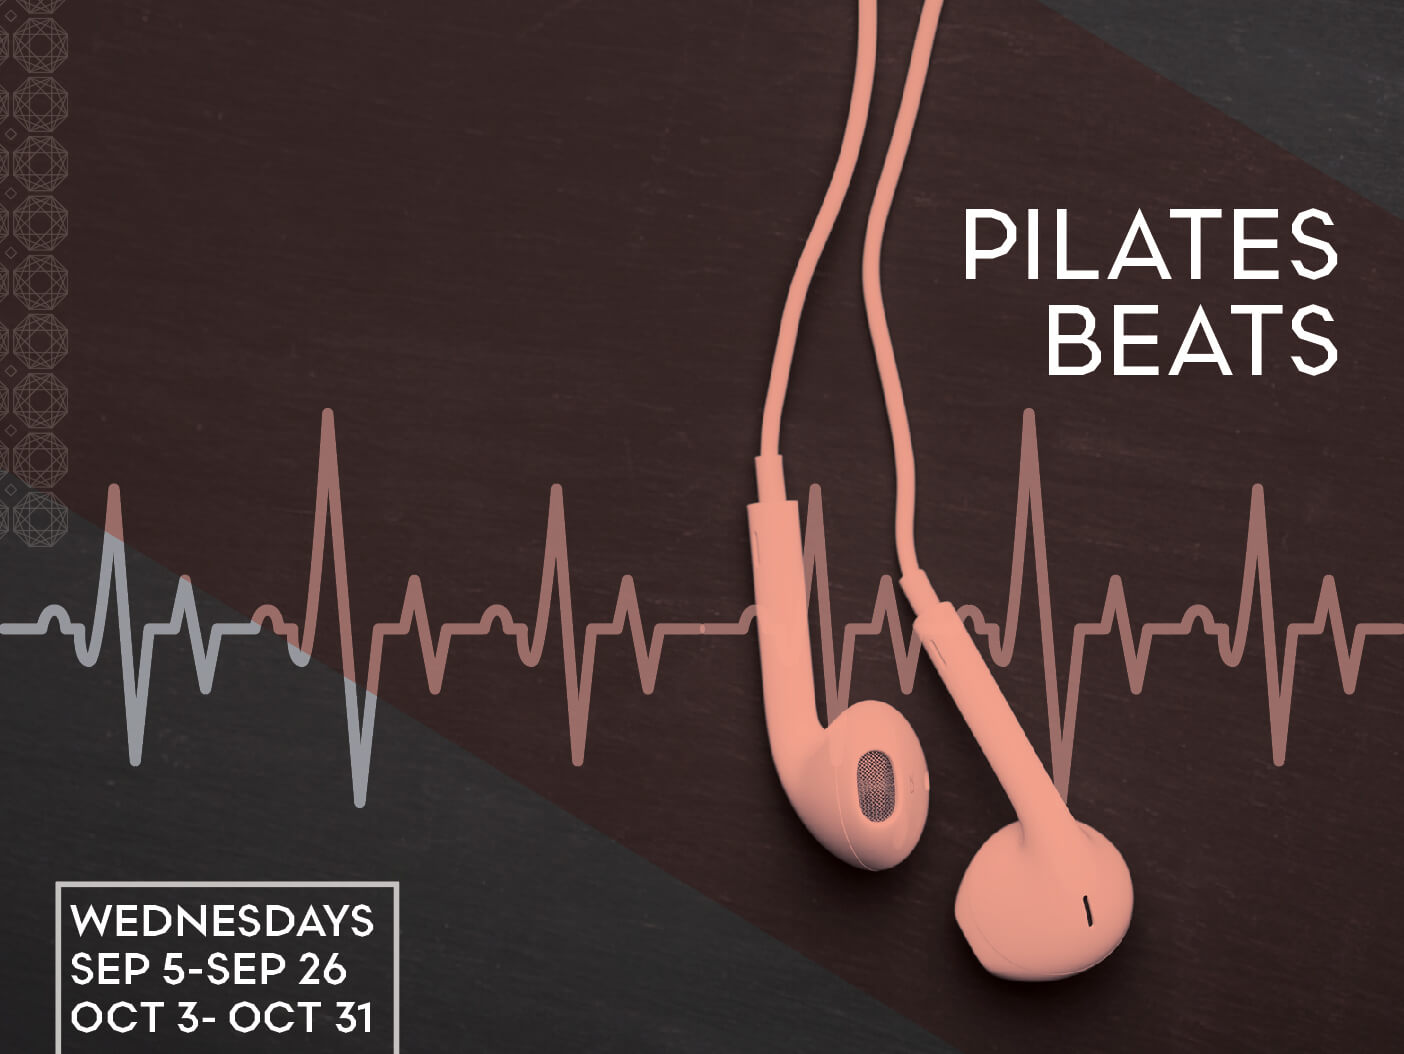 Pilates Beats: Pilates + Cardio Series